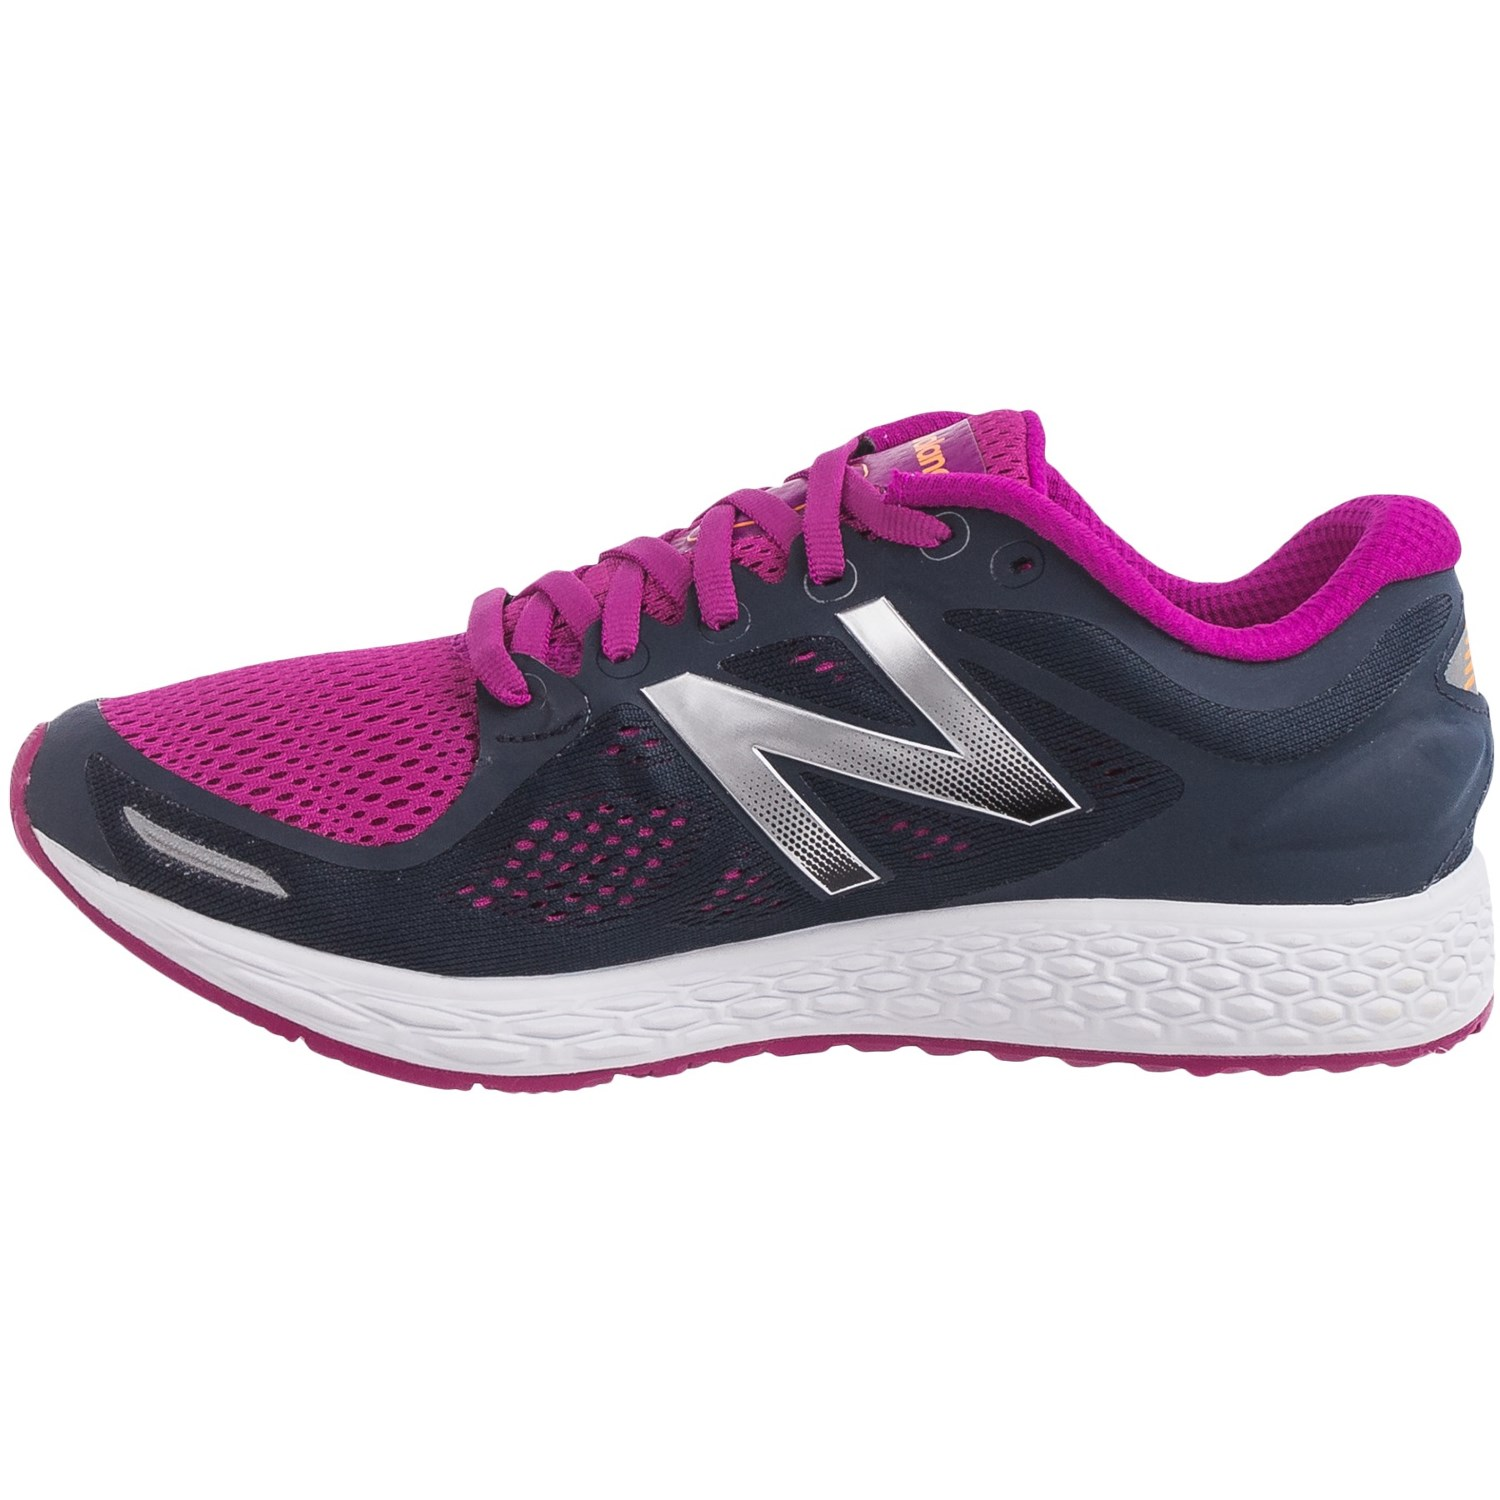 new balance fresh foam zante v2 running shoes for women. Black Bedroom Furniture Sets. Home Design Ideas